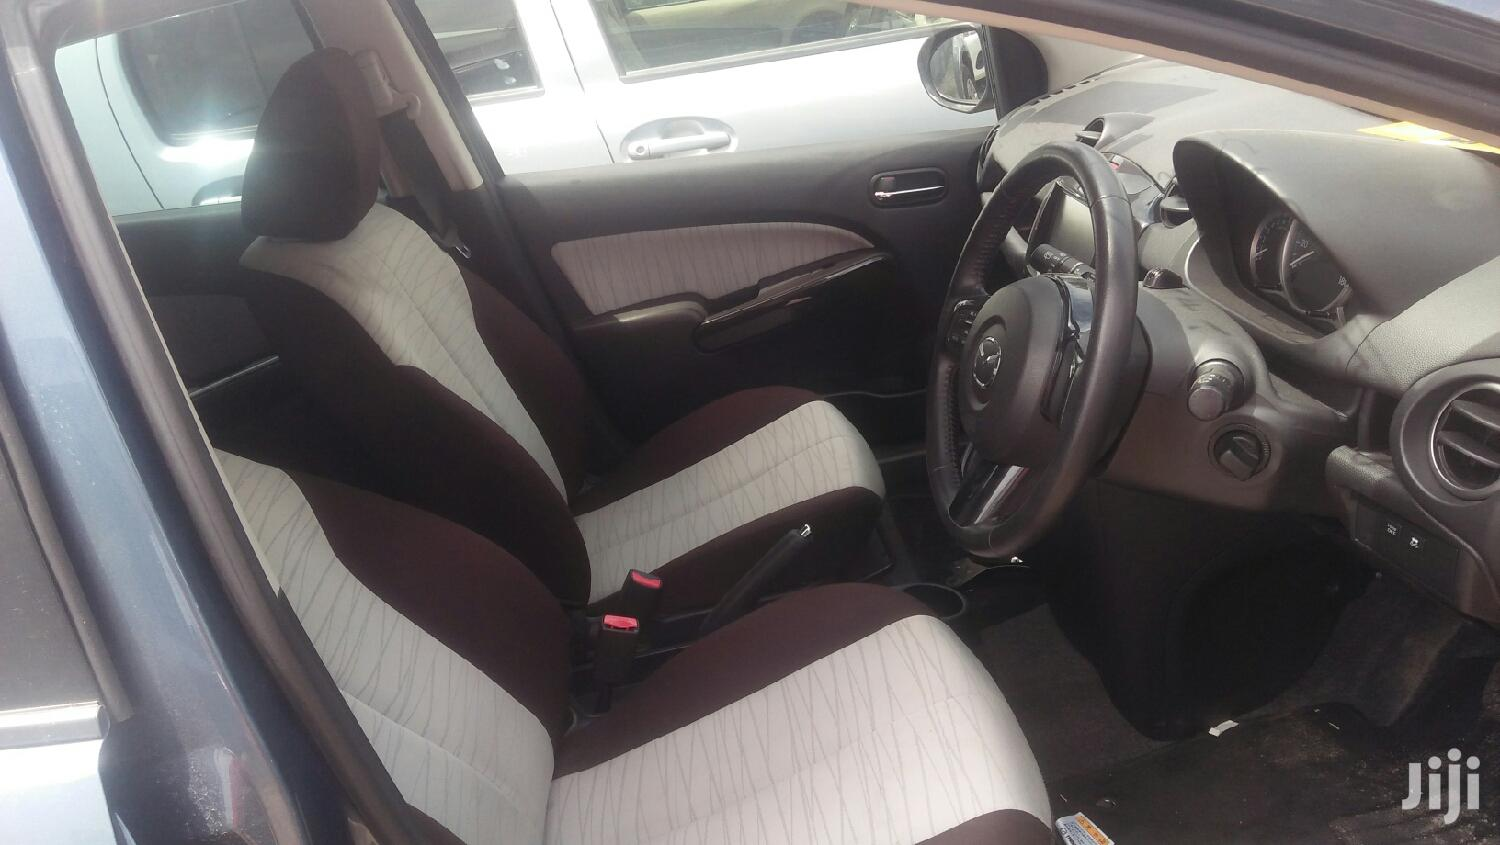 New Mazda Demio 2013 Gray | Cars for sale in Mvita, Mombasa, Kenya